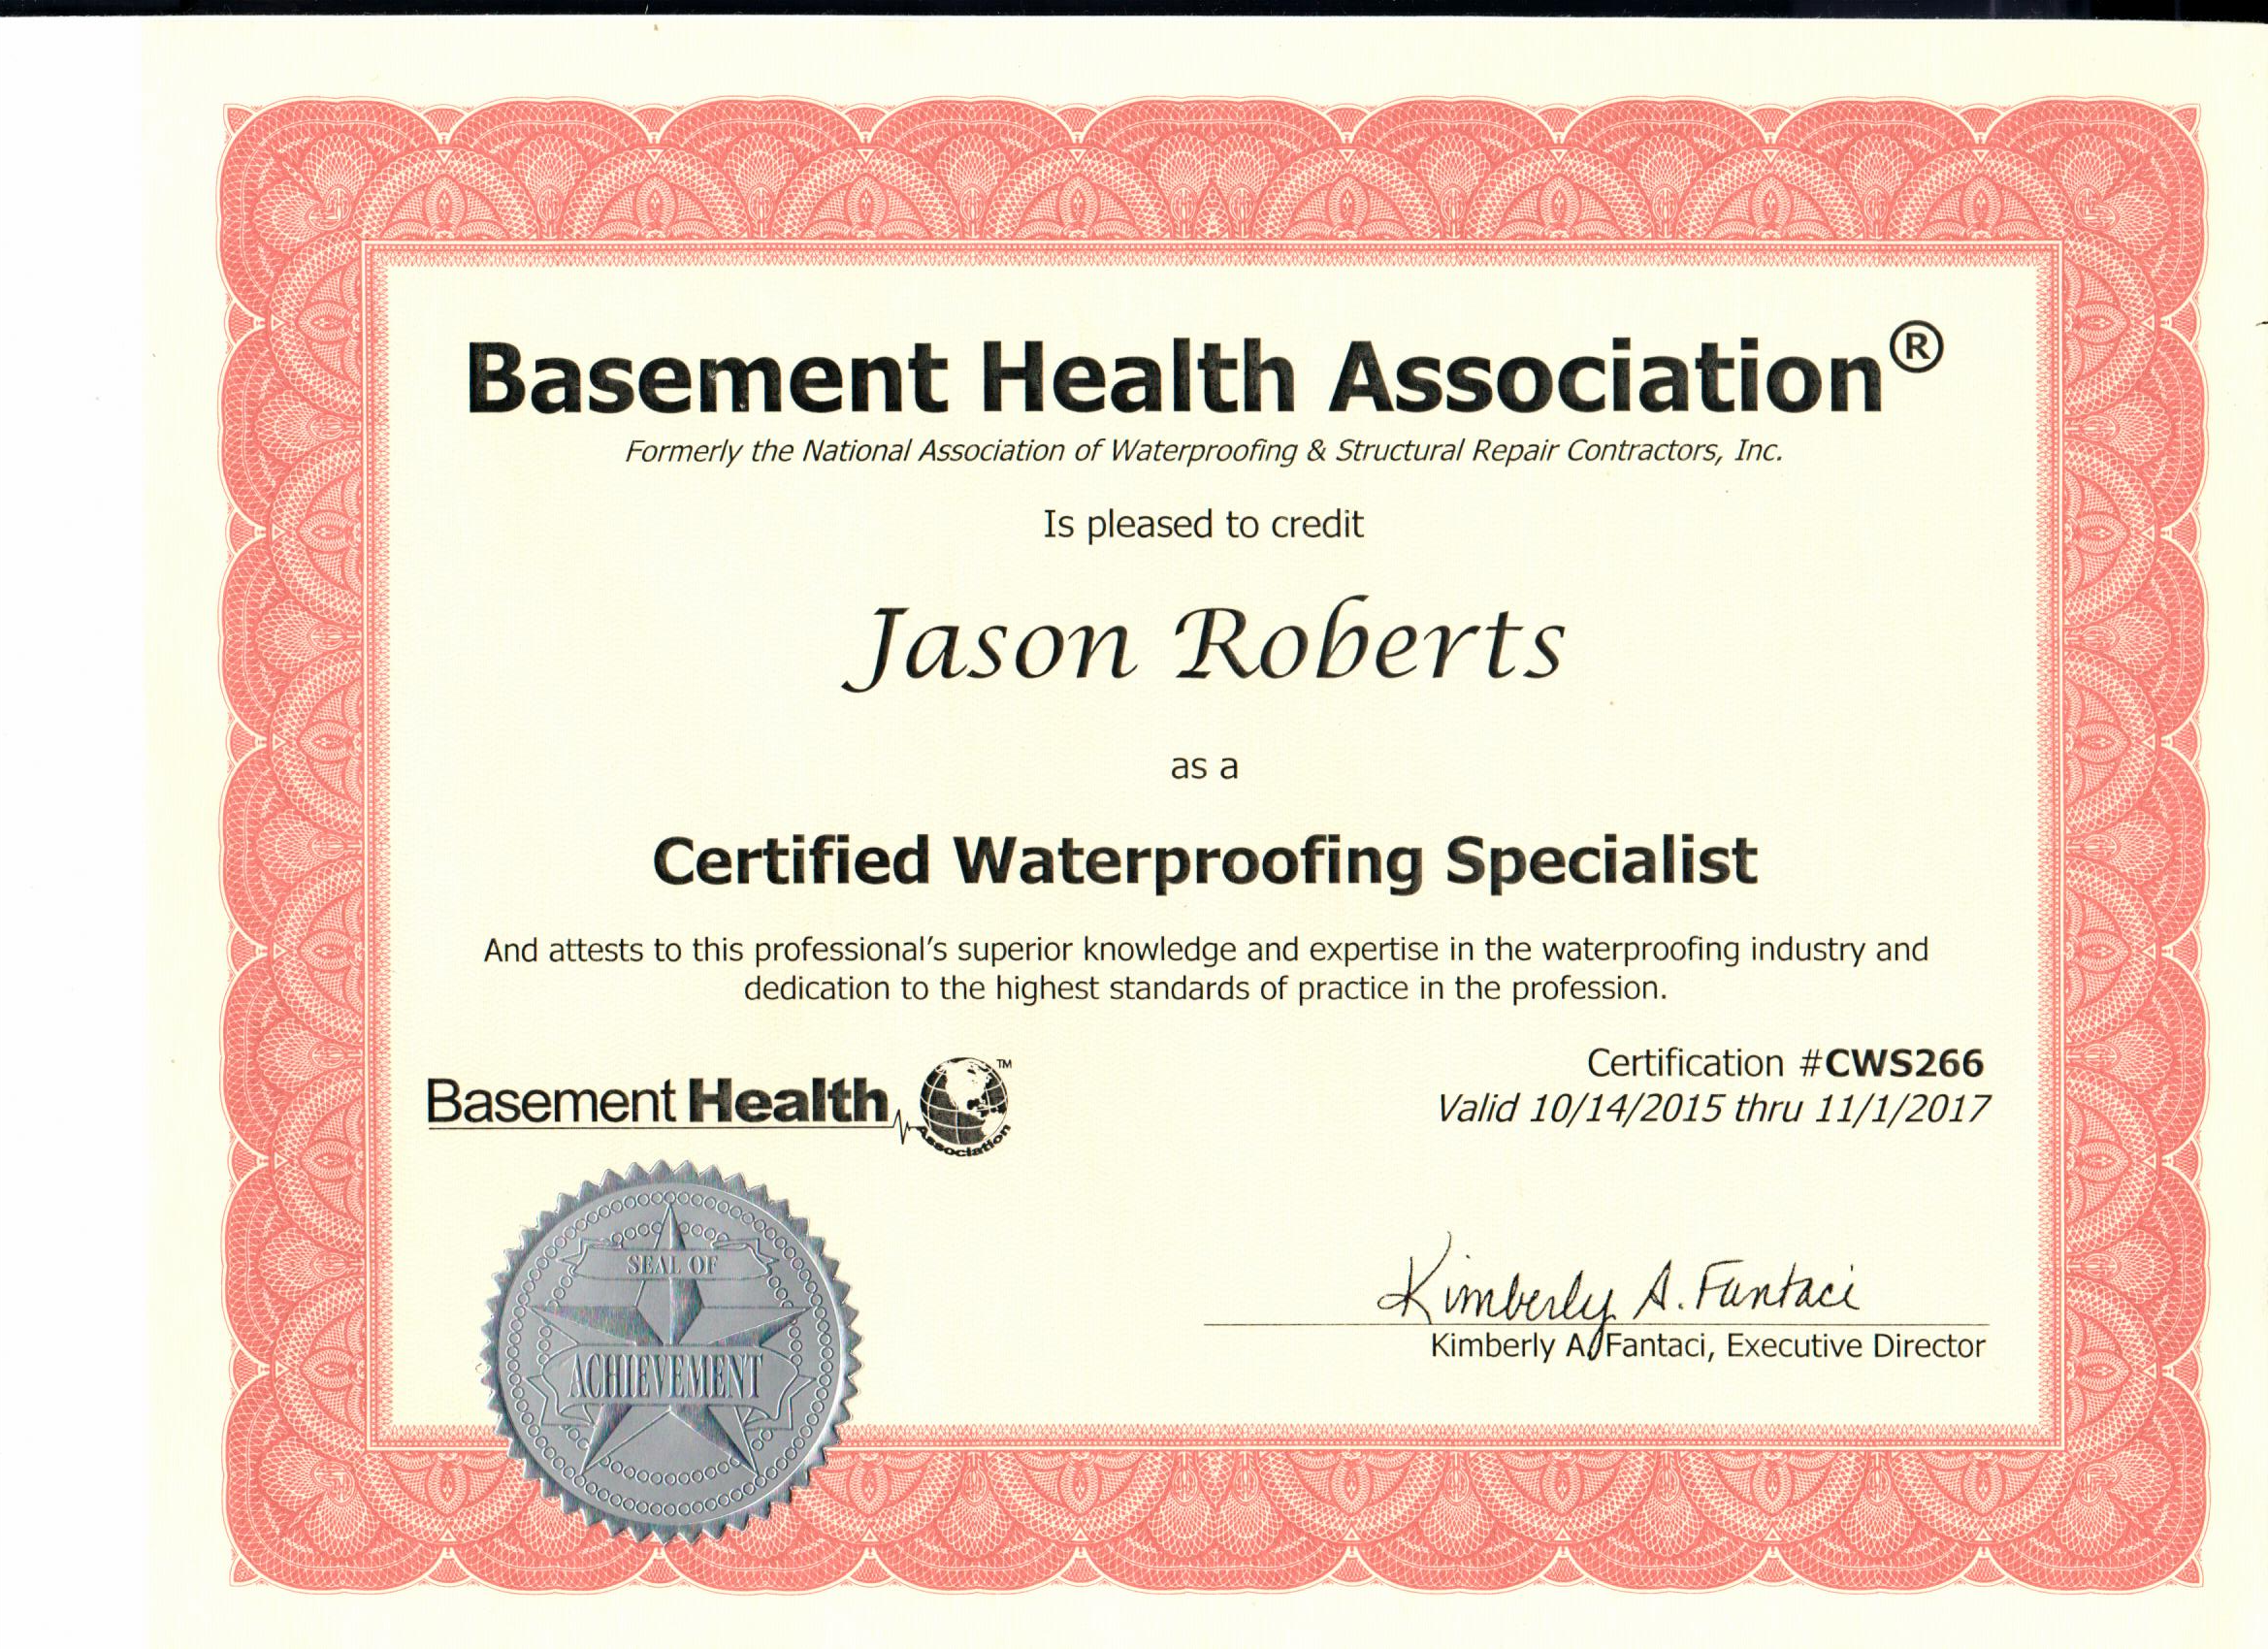 BHA Basement Health Association. Osteen Cert Roberts Cert Awesome Design